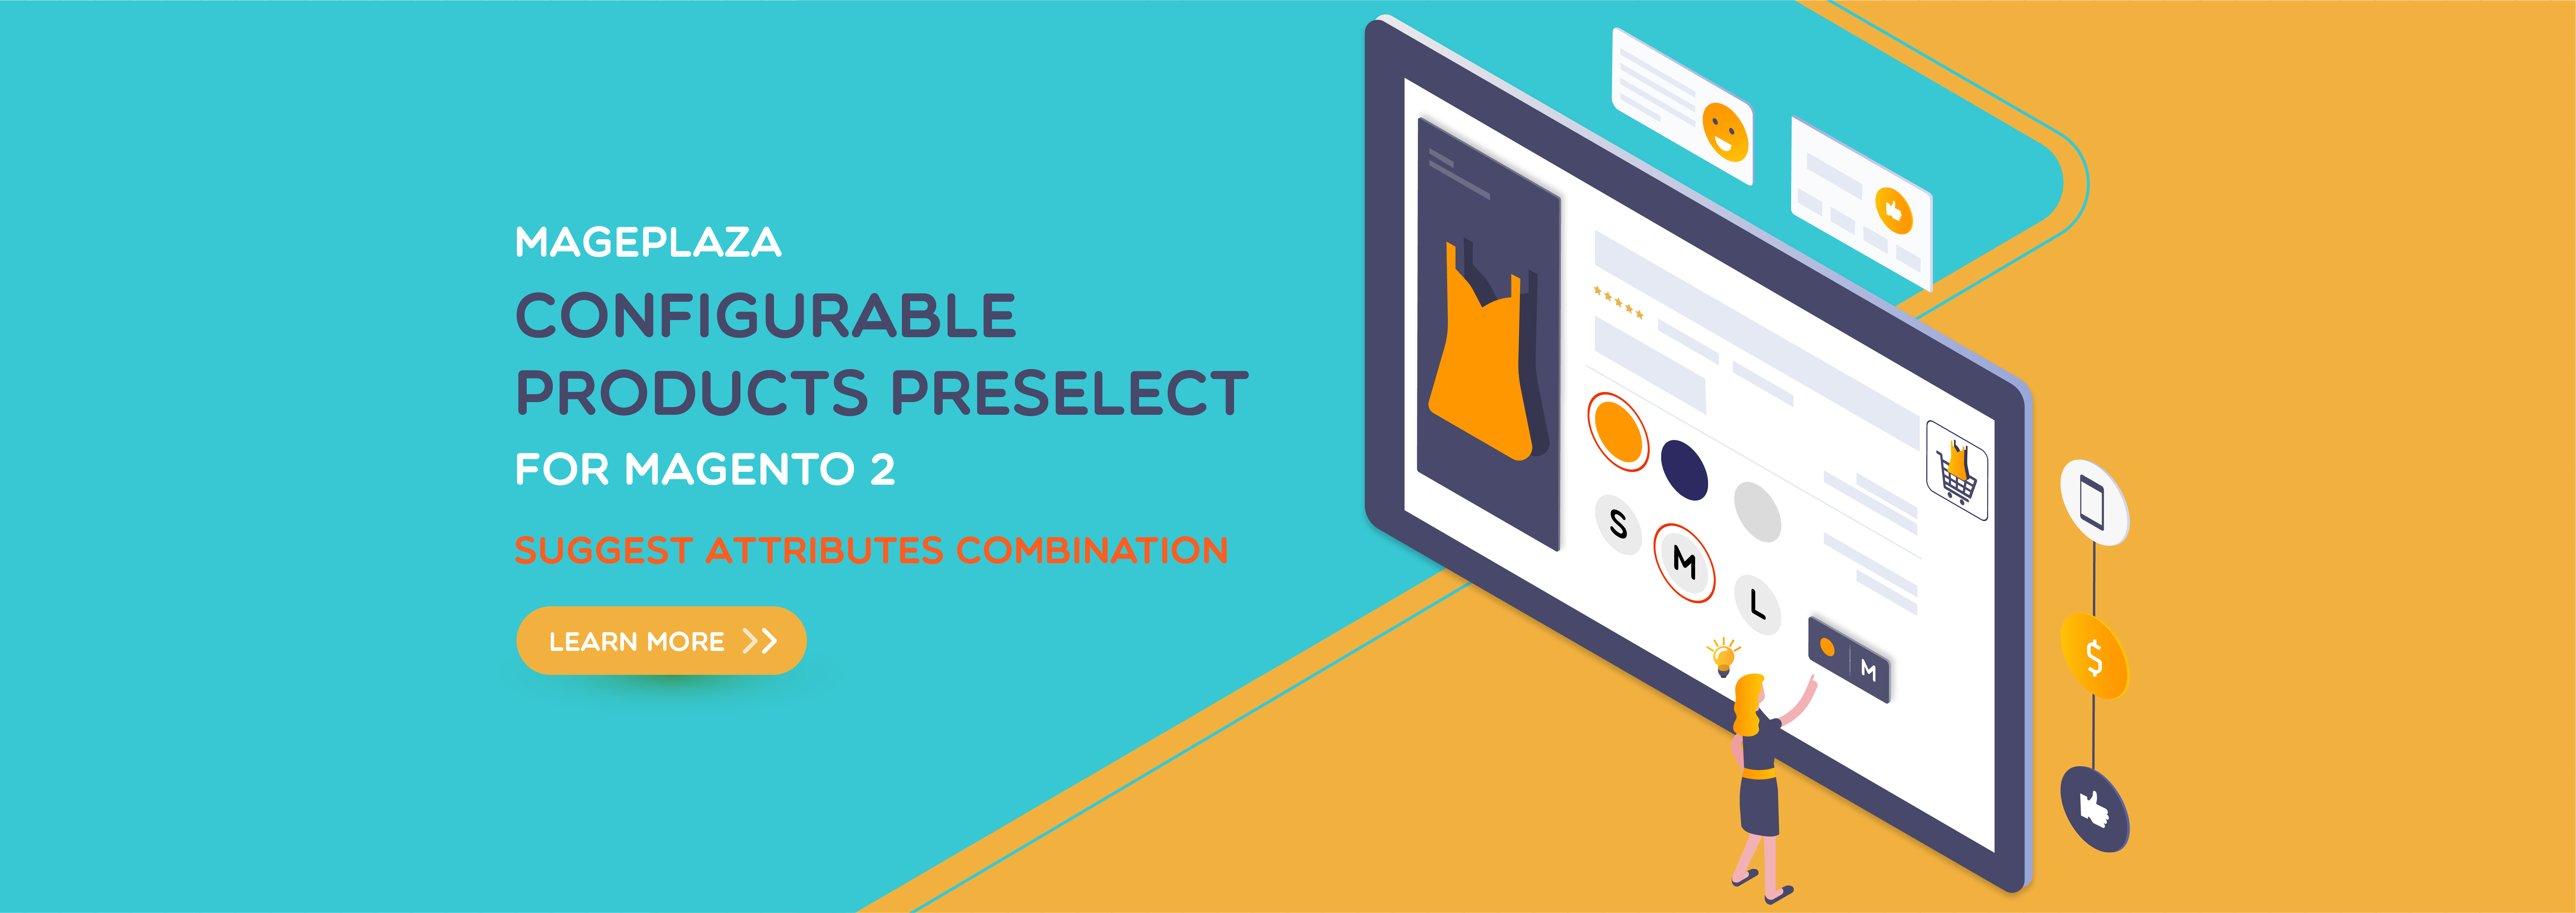 How to Set Up Configurable Products Preselect on Magento 2